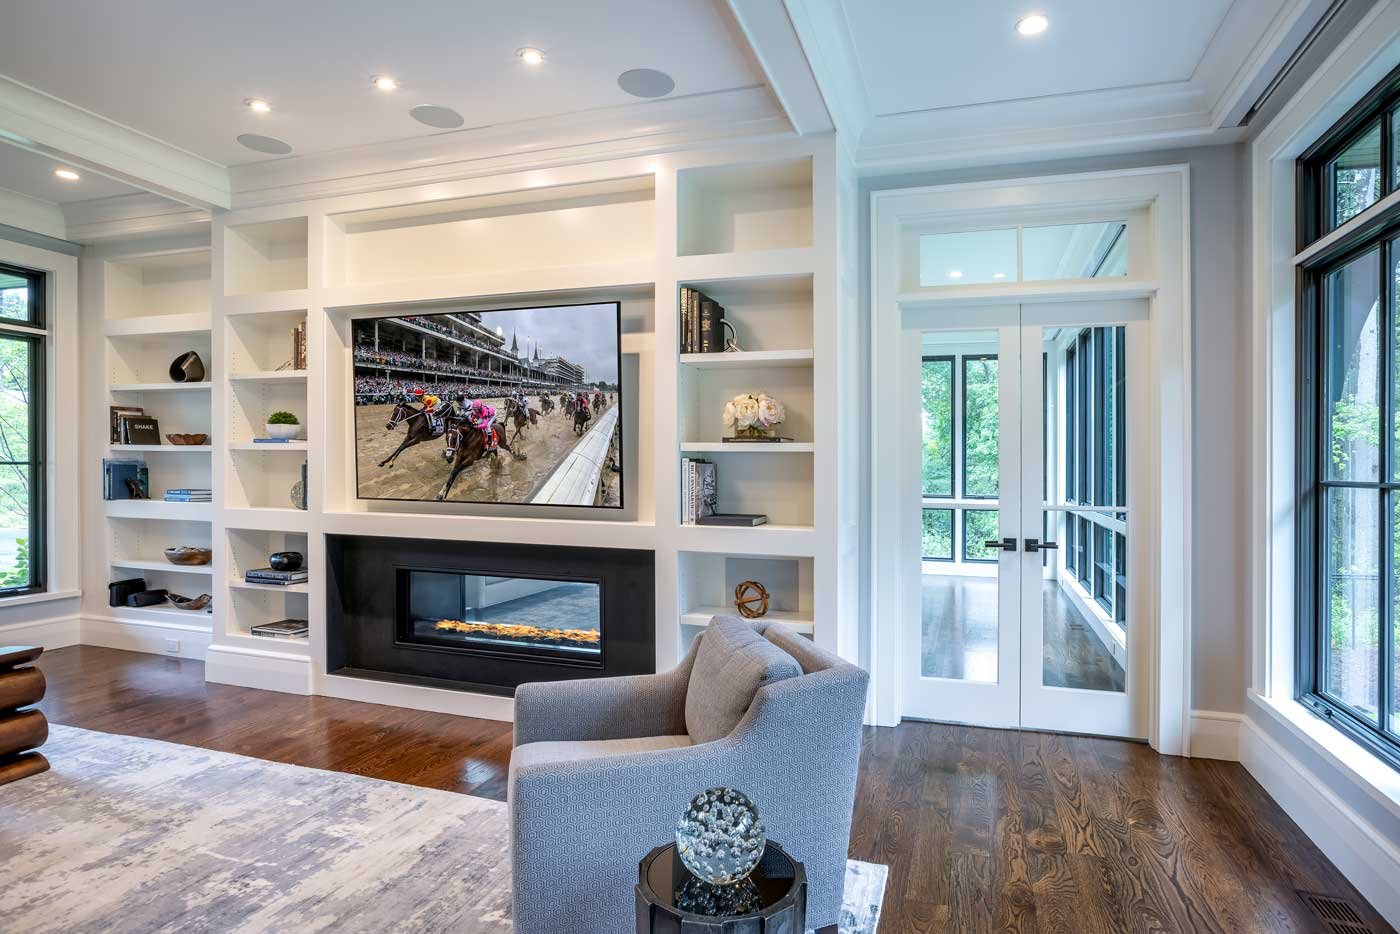 family room with television playing